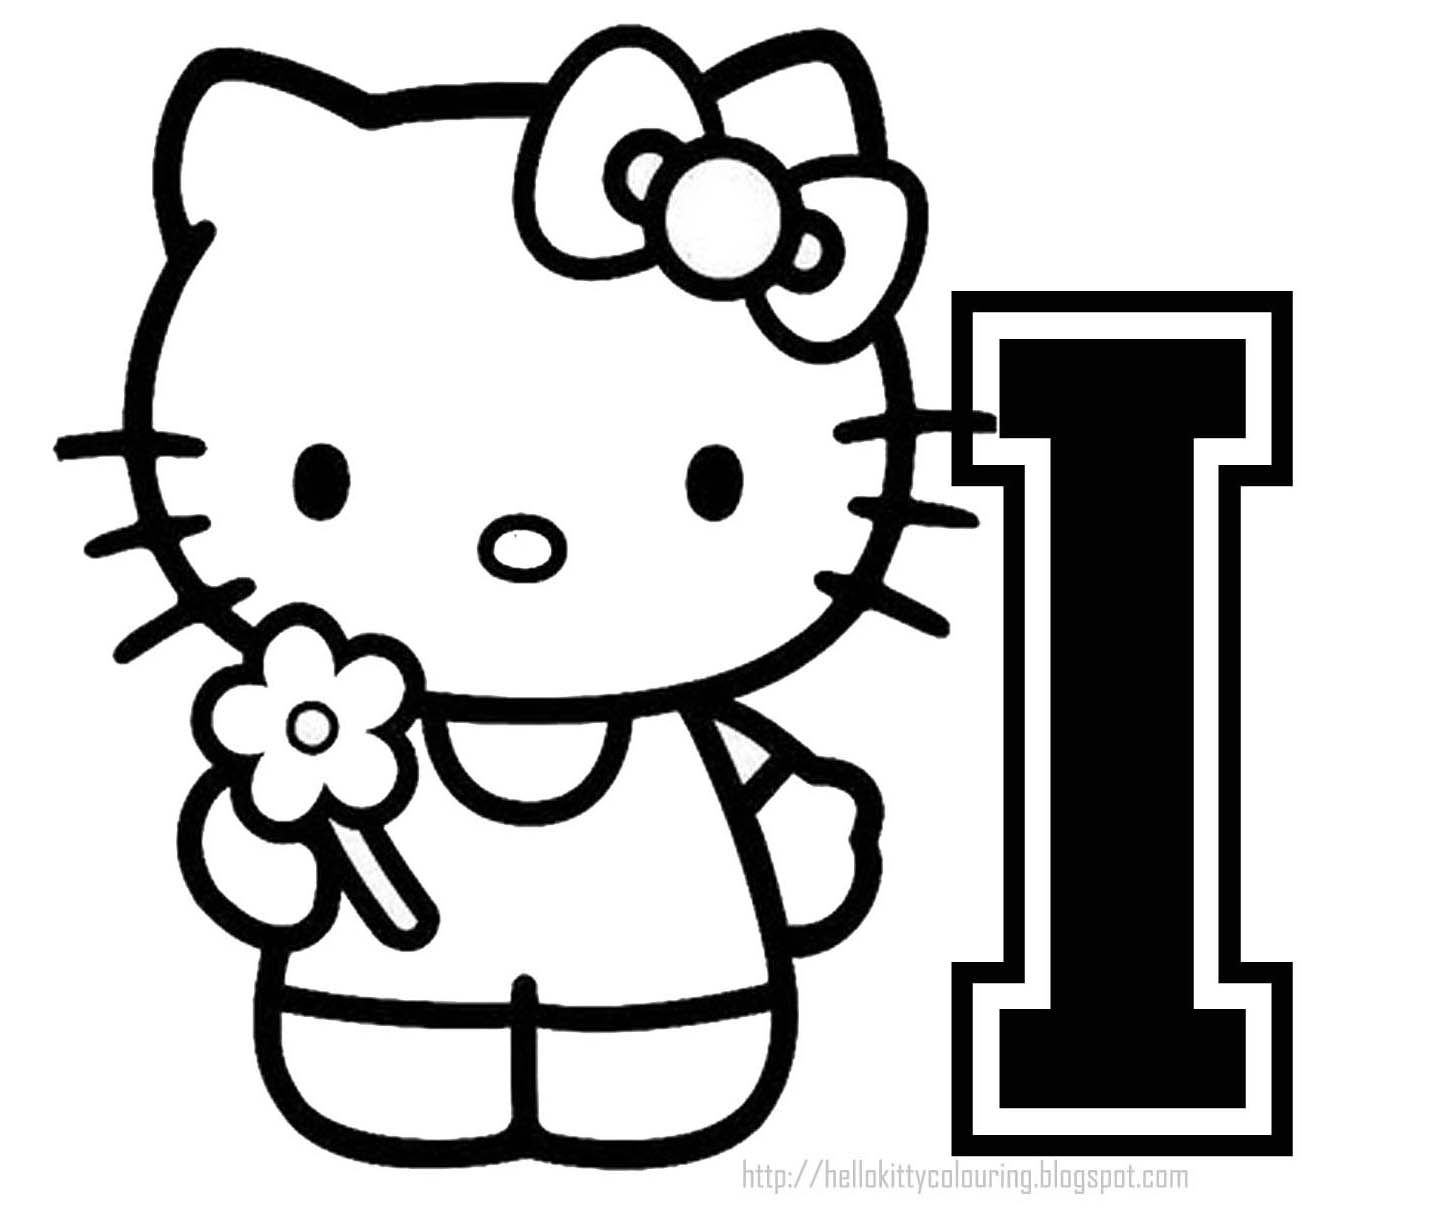 Hello kitty coloring pages free online printable coloring pages sheets for kids Get the latest free Hello kitty coloring pages images favorite coloring